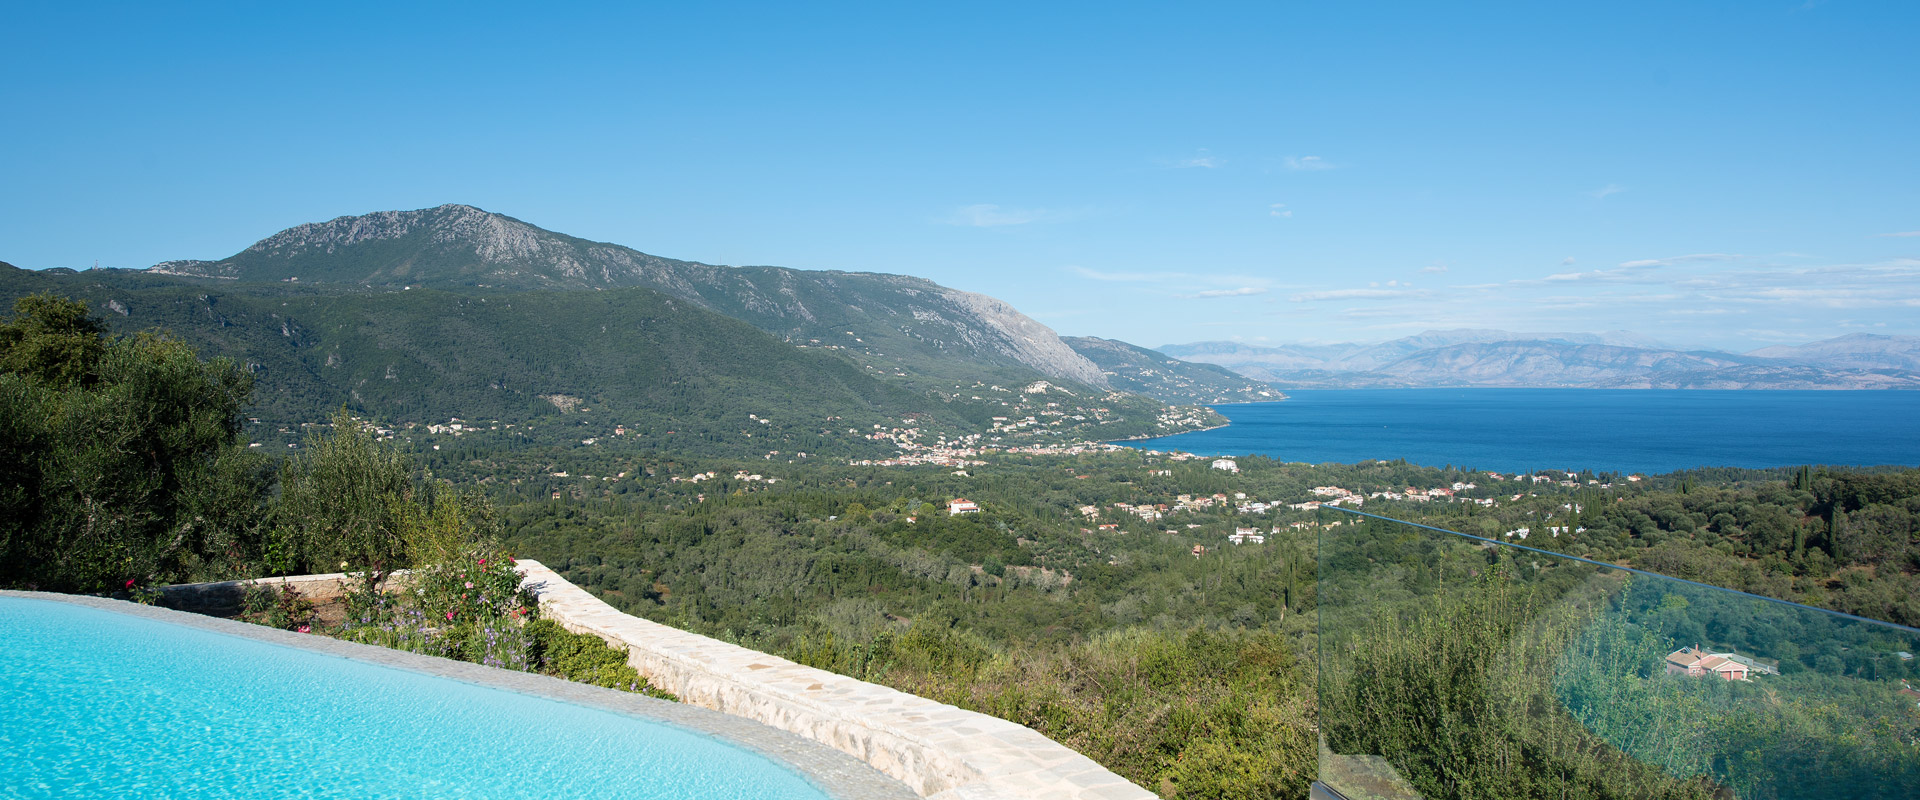 Spectacular views of the Ionian Sea